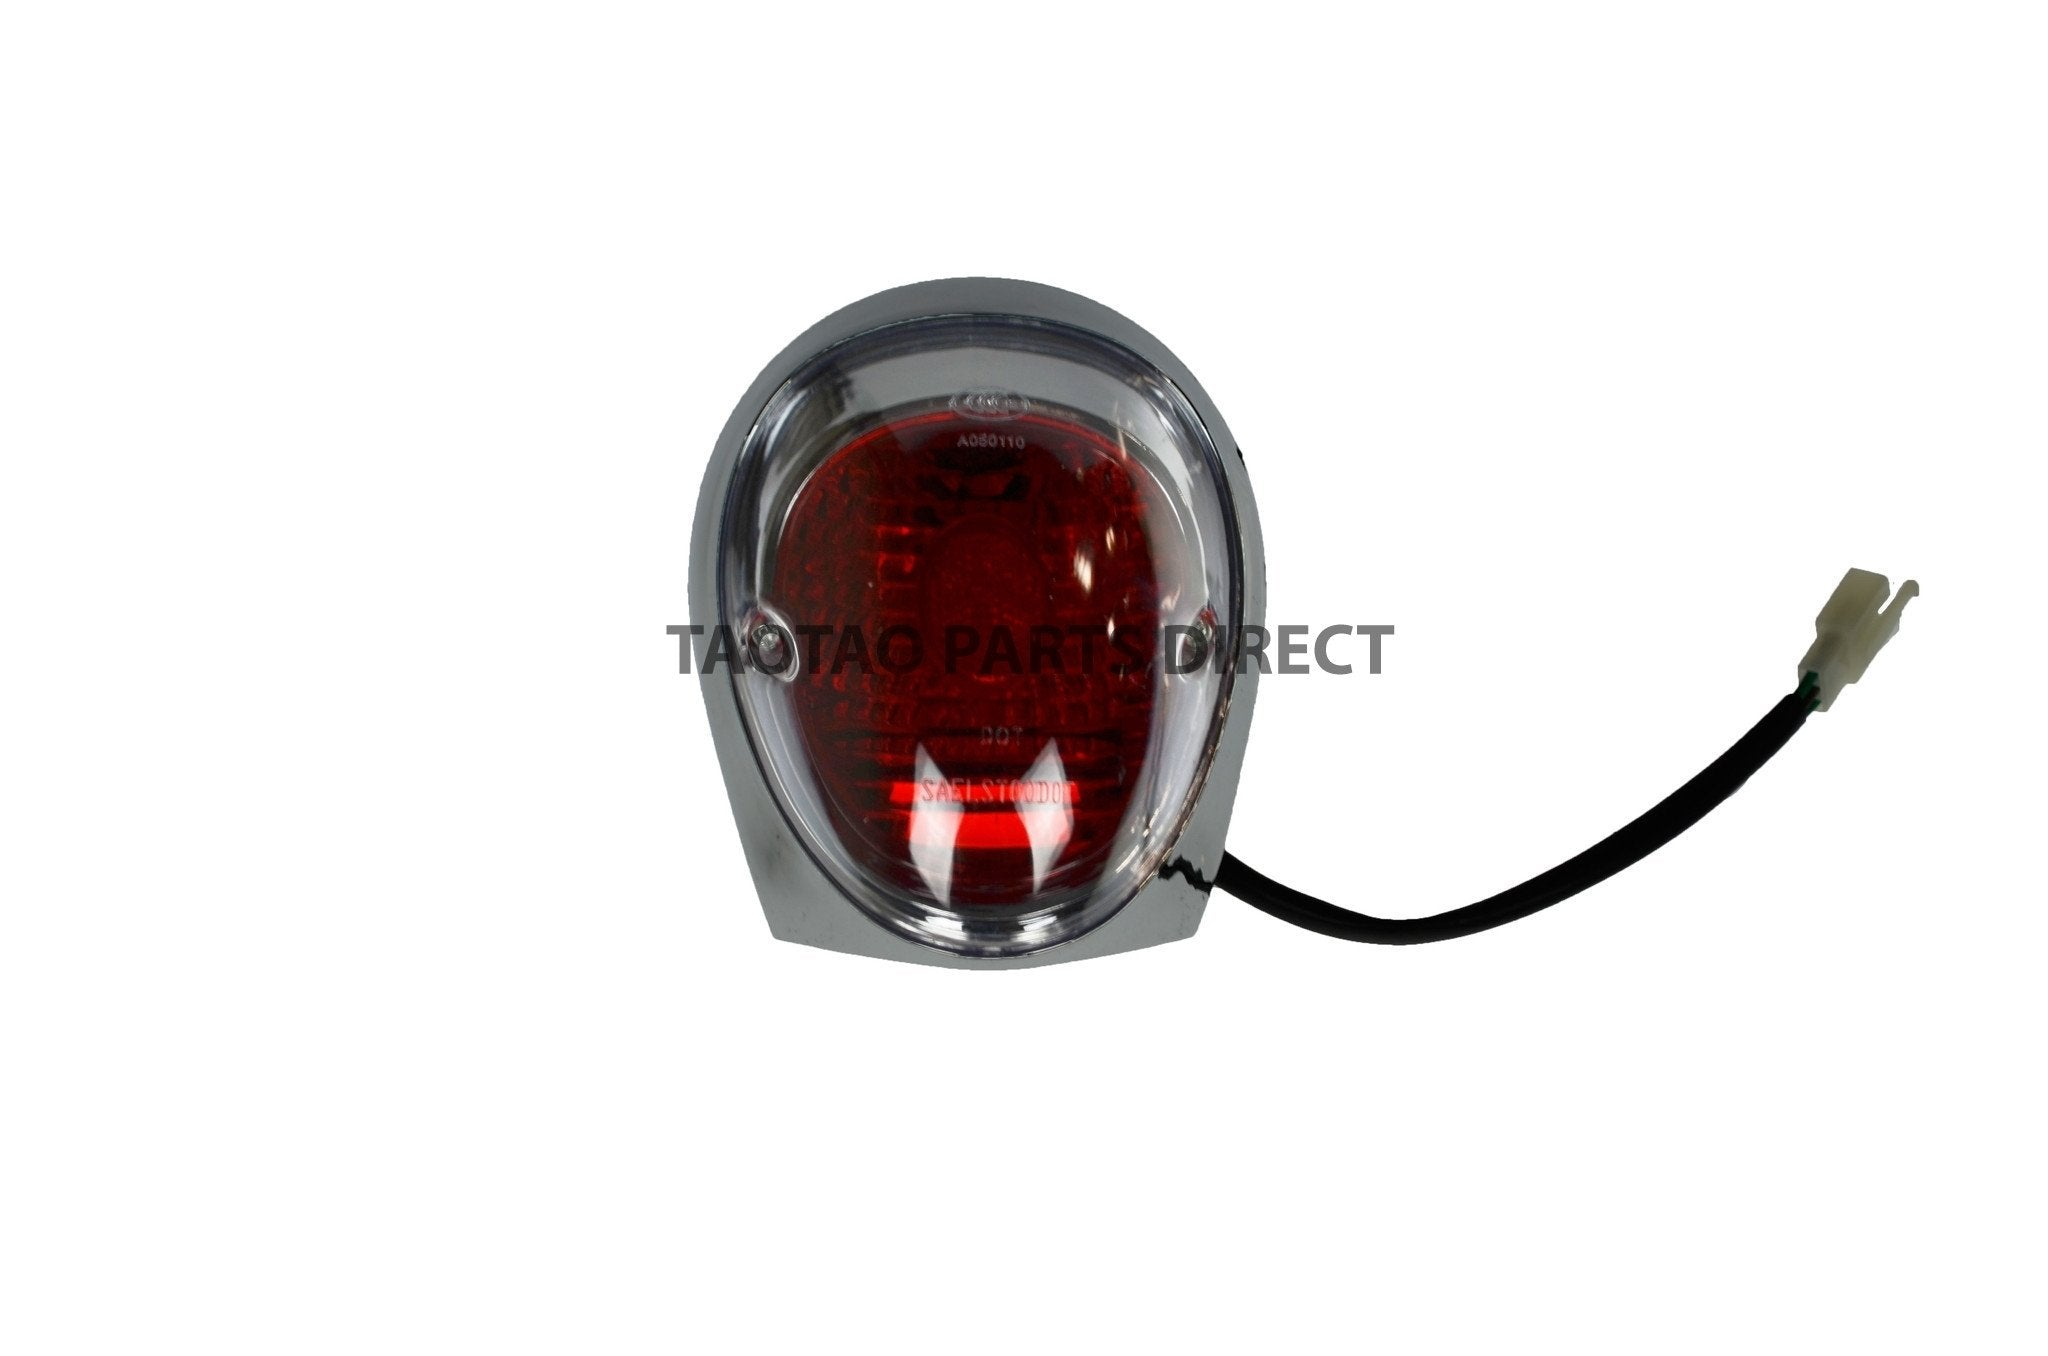 Scooter Parts - CY50B Tail Light